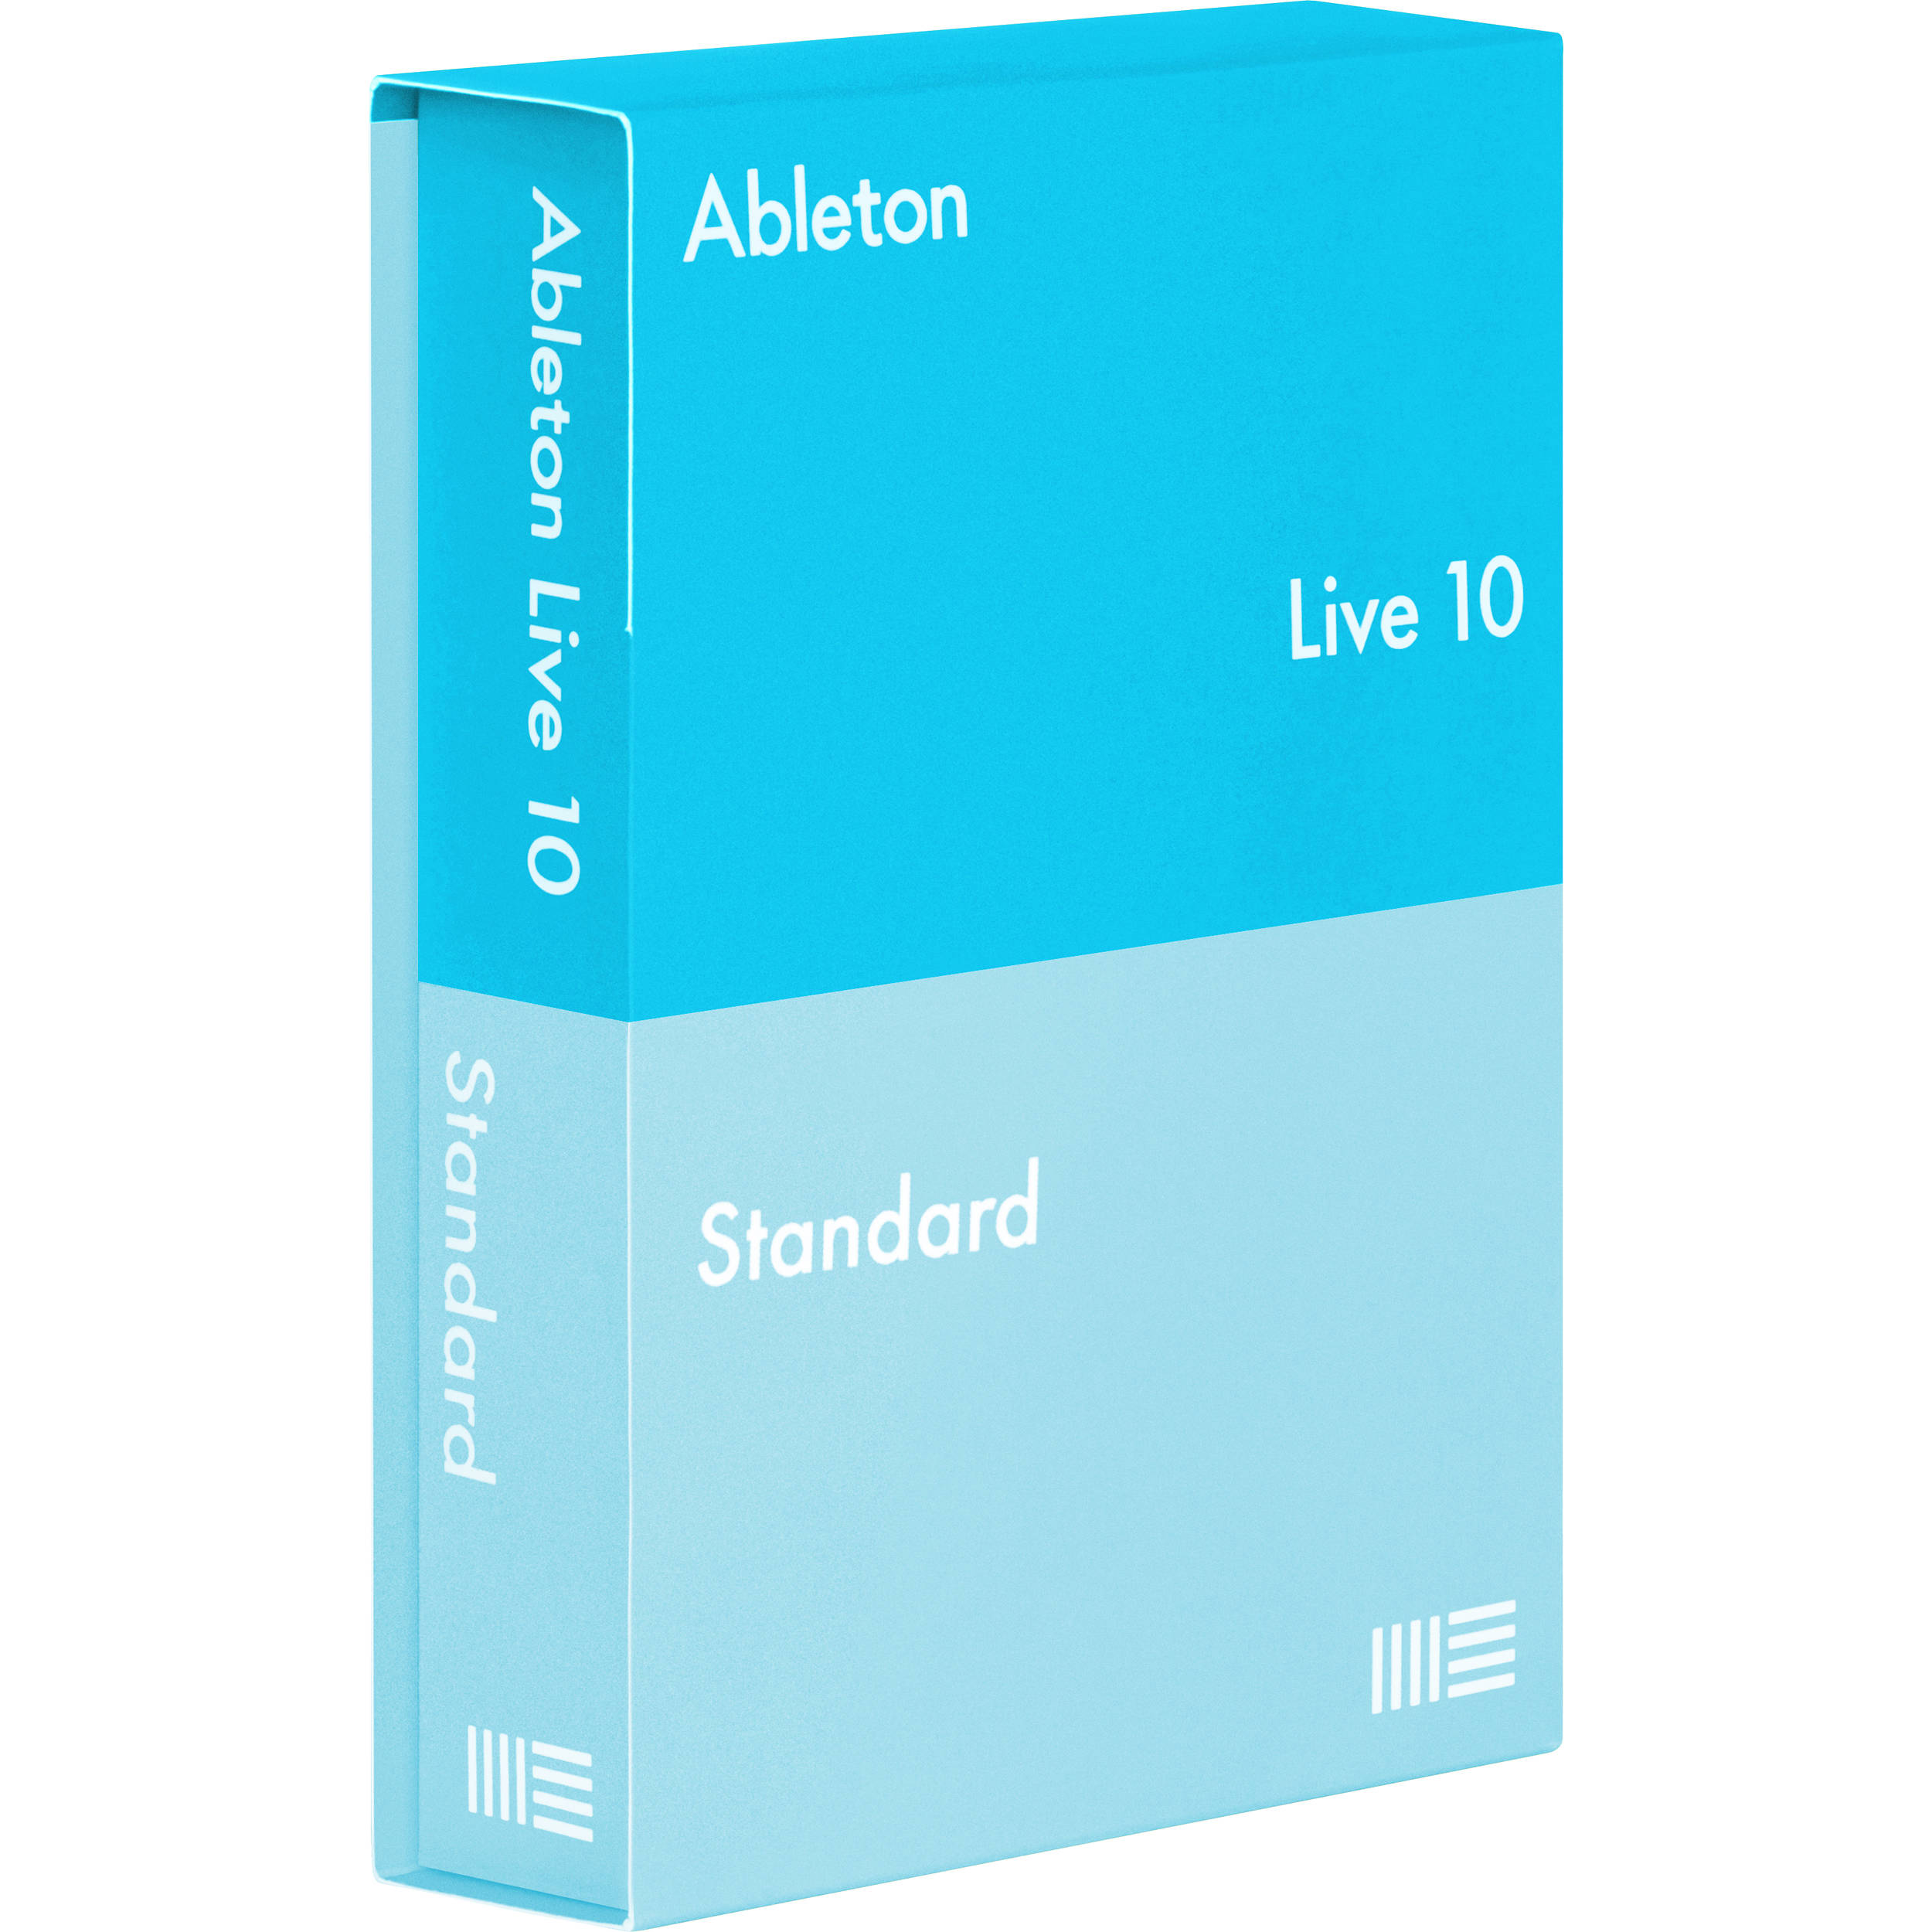 ableton 9 system requirements